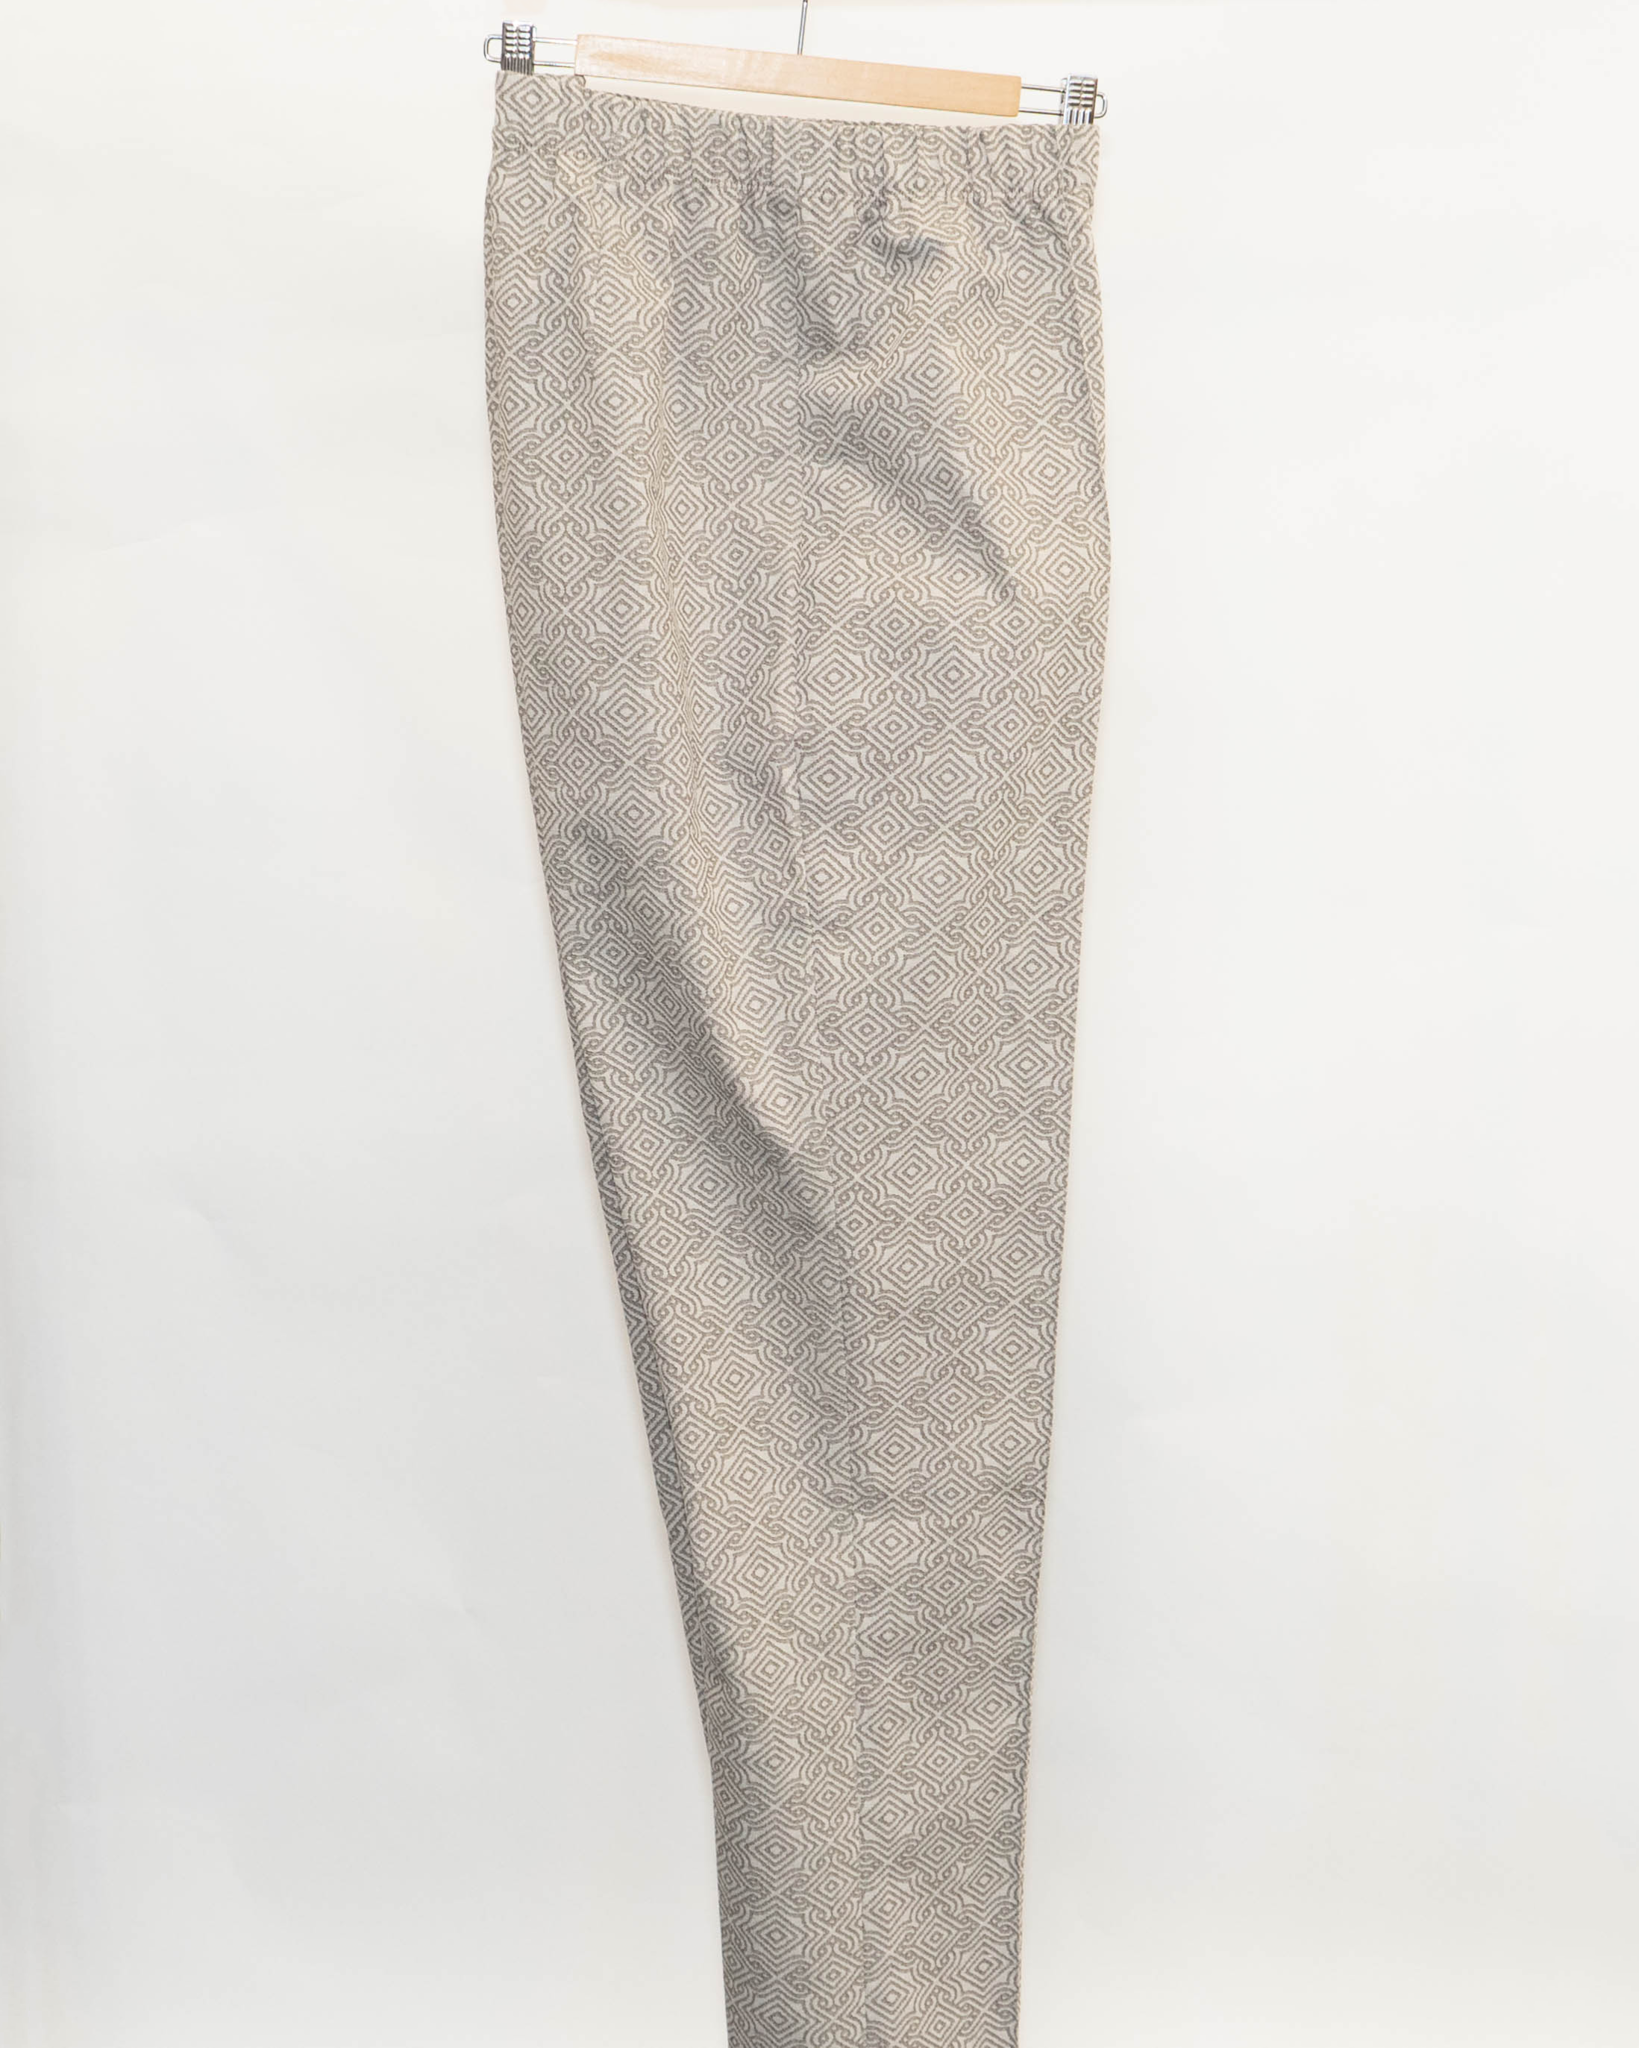 MOSAIC Trousers in Cotton stretch-3